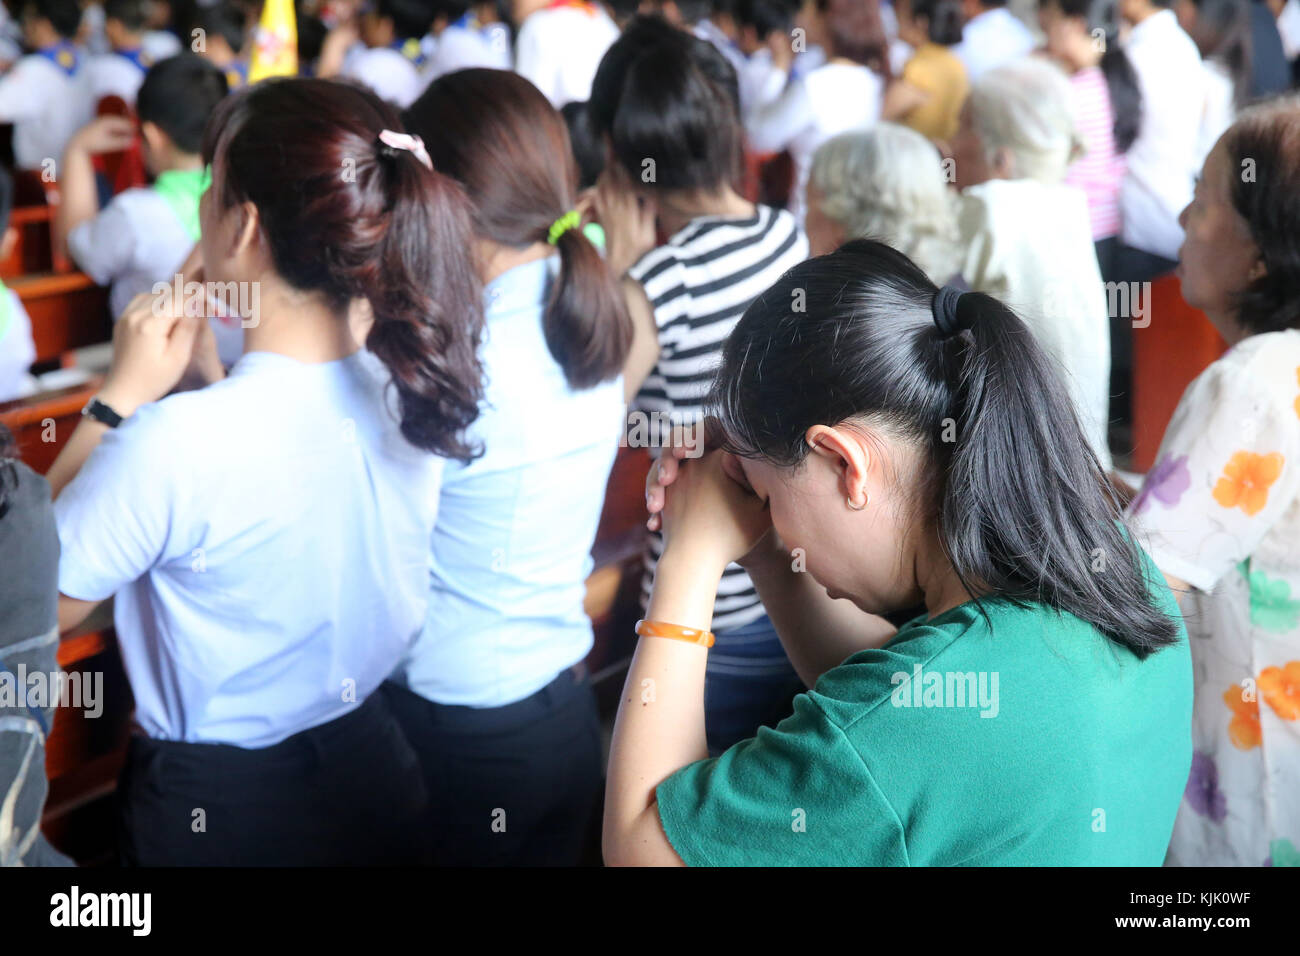 Catholic church. Sunday mass.  Vietnam. - Stock Image